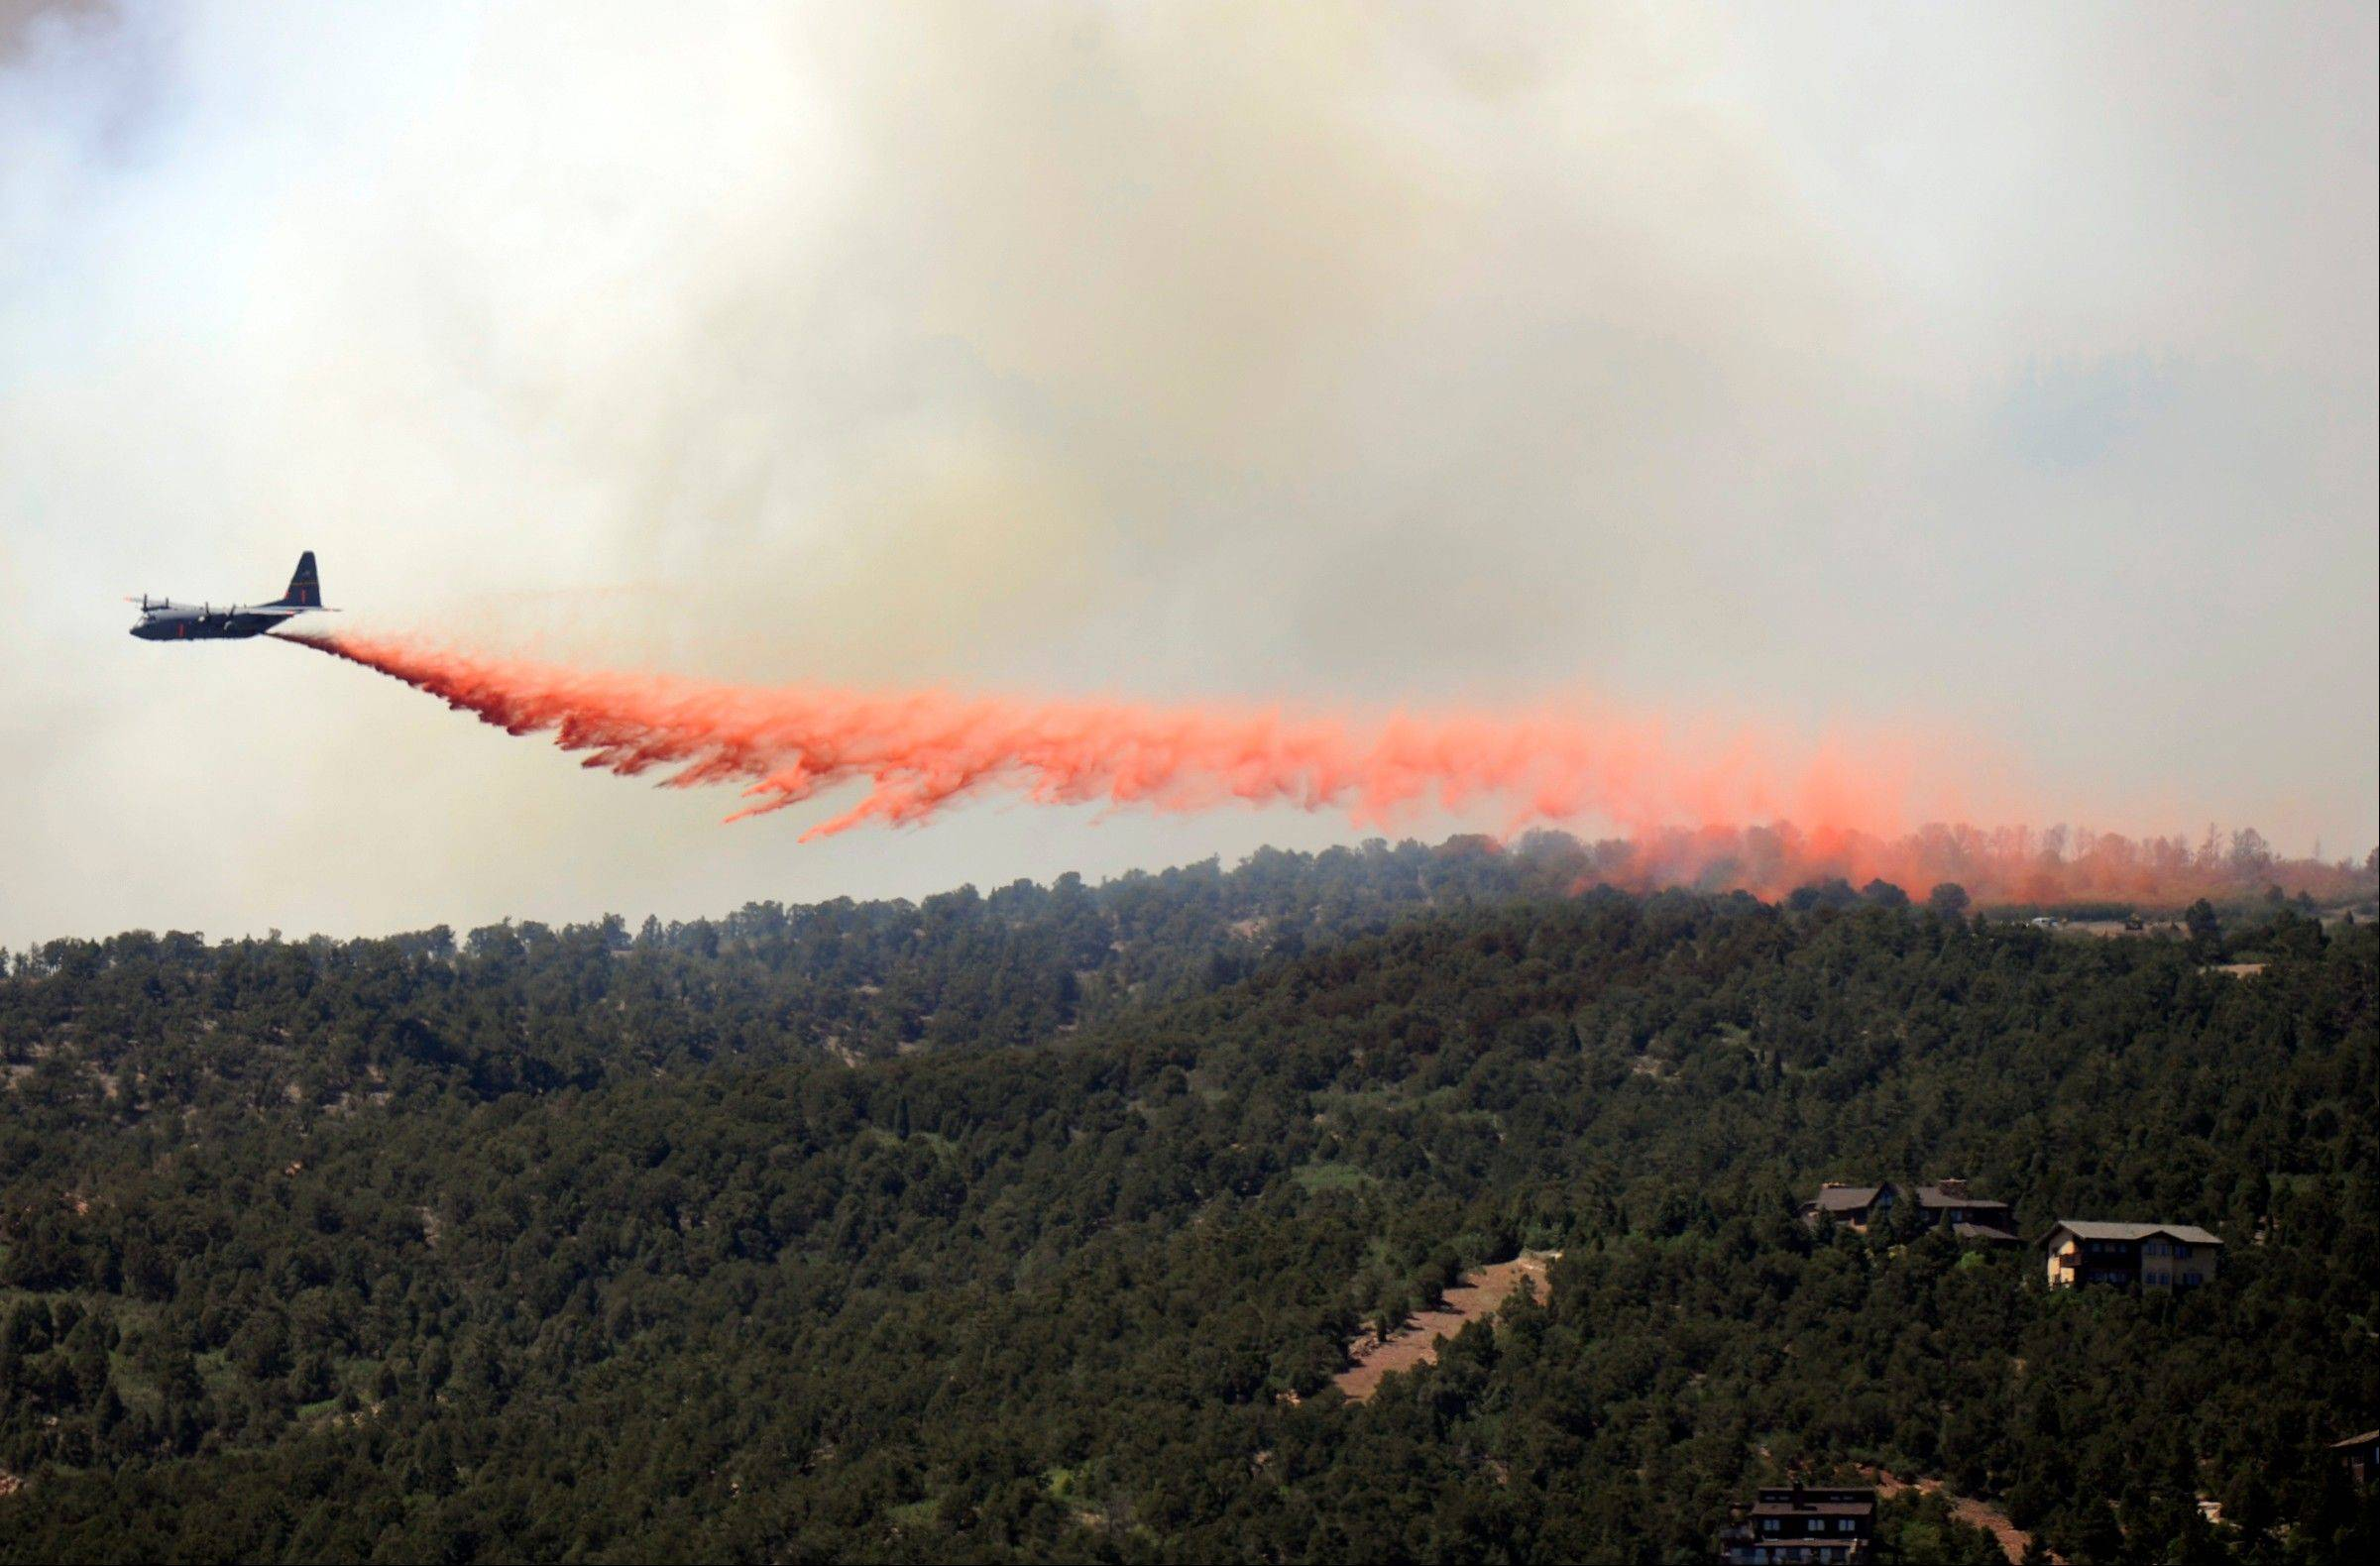 A C-130 makes a drop on the Waldo Canyon wildfire in Colorado Springs, Colo., Tuesday, June 26, 2012. Colorado has endured nearly a week of 100-plus-degree days and low humidity, sapping moisture from timber and grass, creating a devastating formula for volatile wildfires across the state and punishing conditions for firefighters.